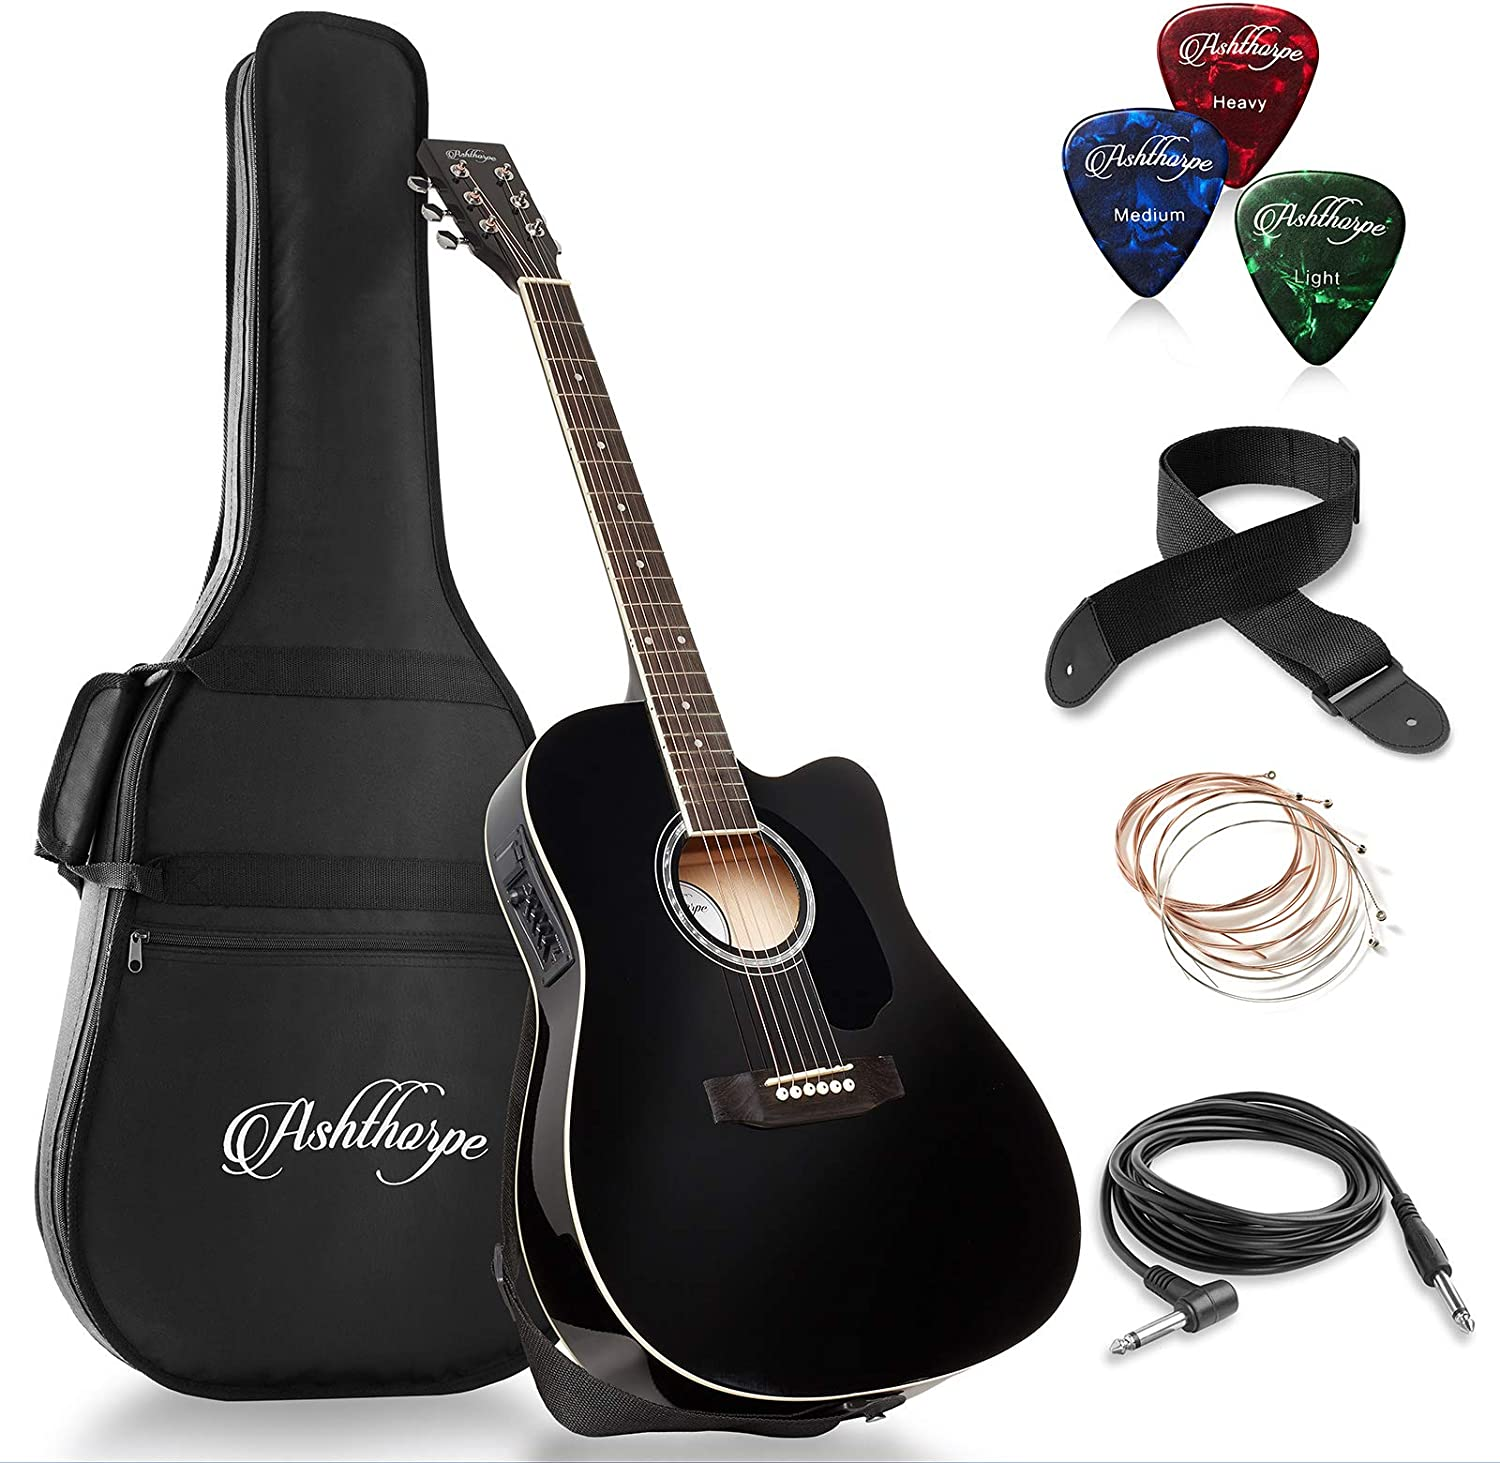 Ashthorpe Full-Size Cutaway Thinline Acoustic-Electric Guitar Package – Premium Tonewoods – Black